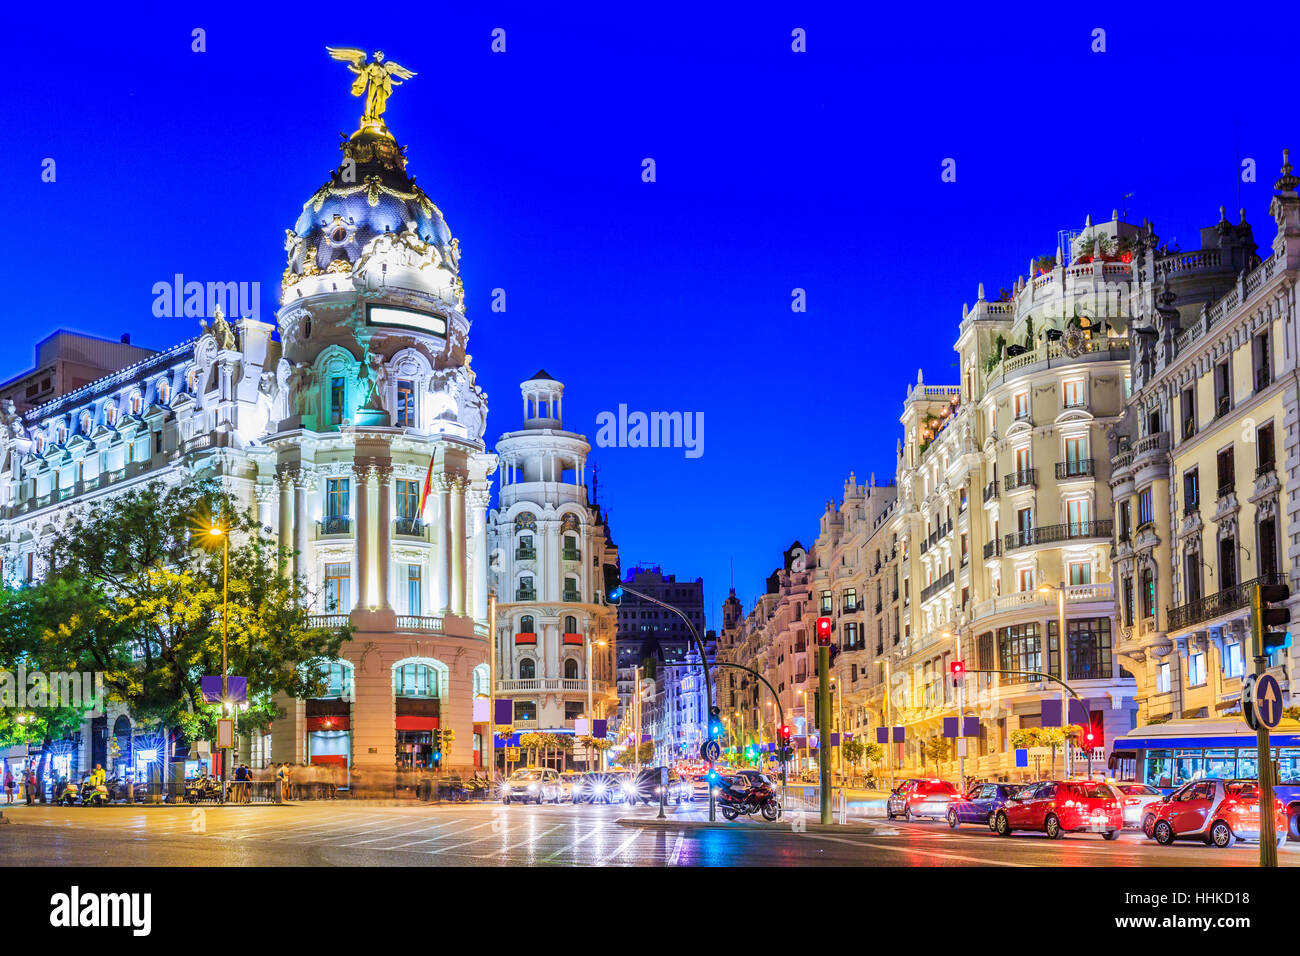 Madrid, Spain. Gran Via, main shopping street at twilight. - Stock Image